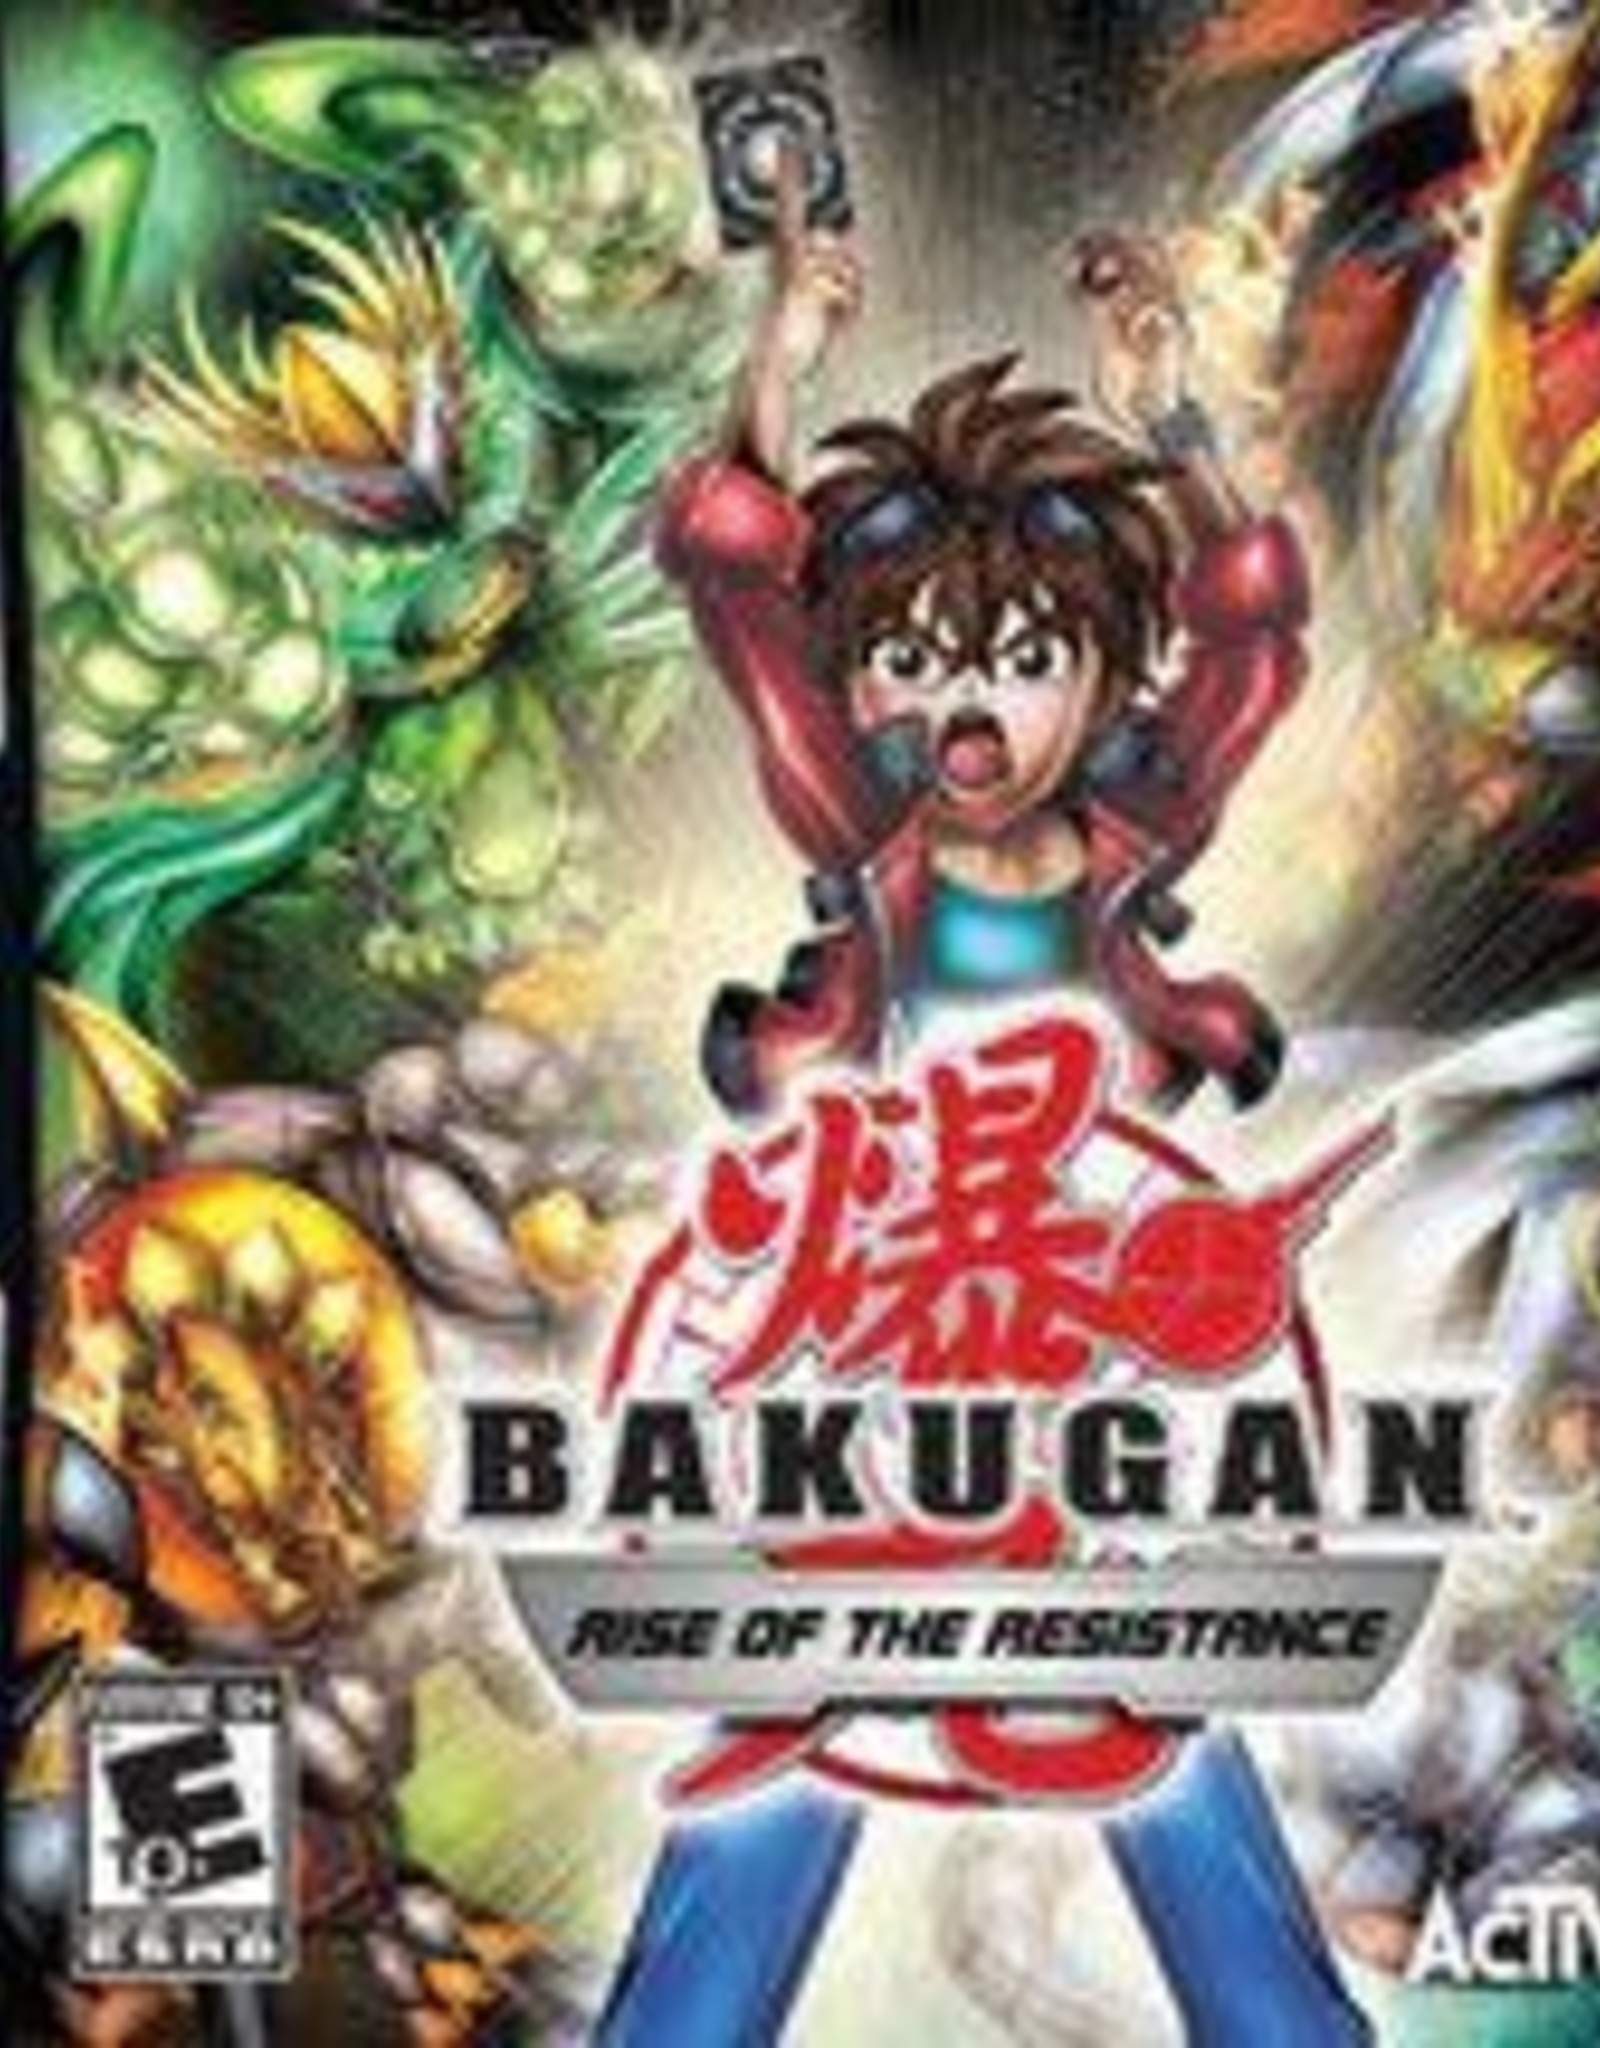 Nintendo DS Bakugan: Rise Of The Resistance